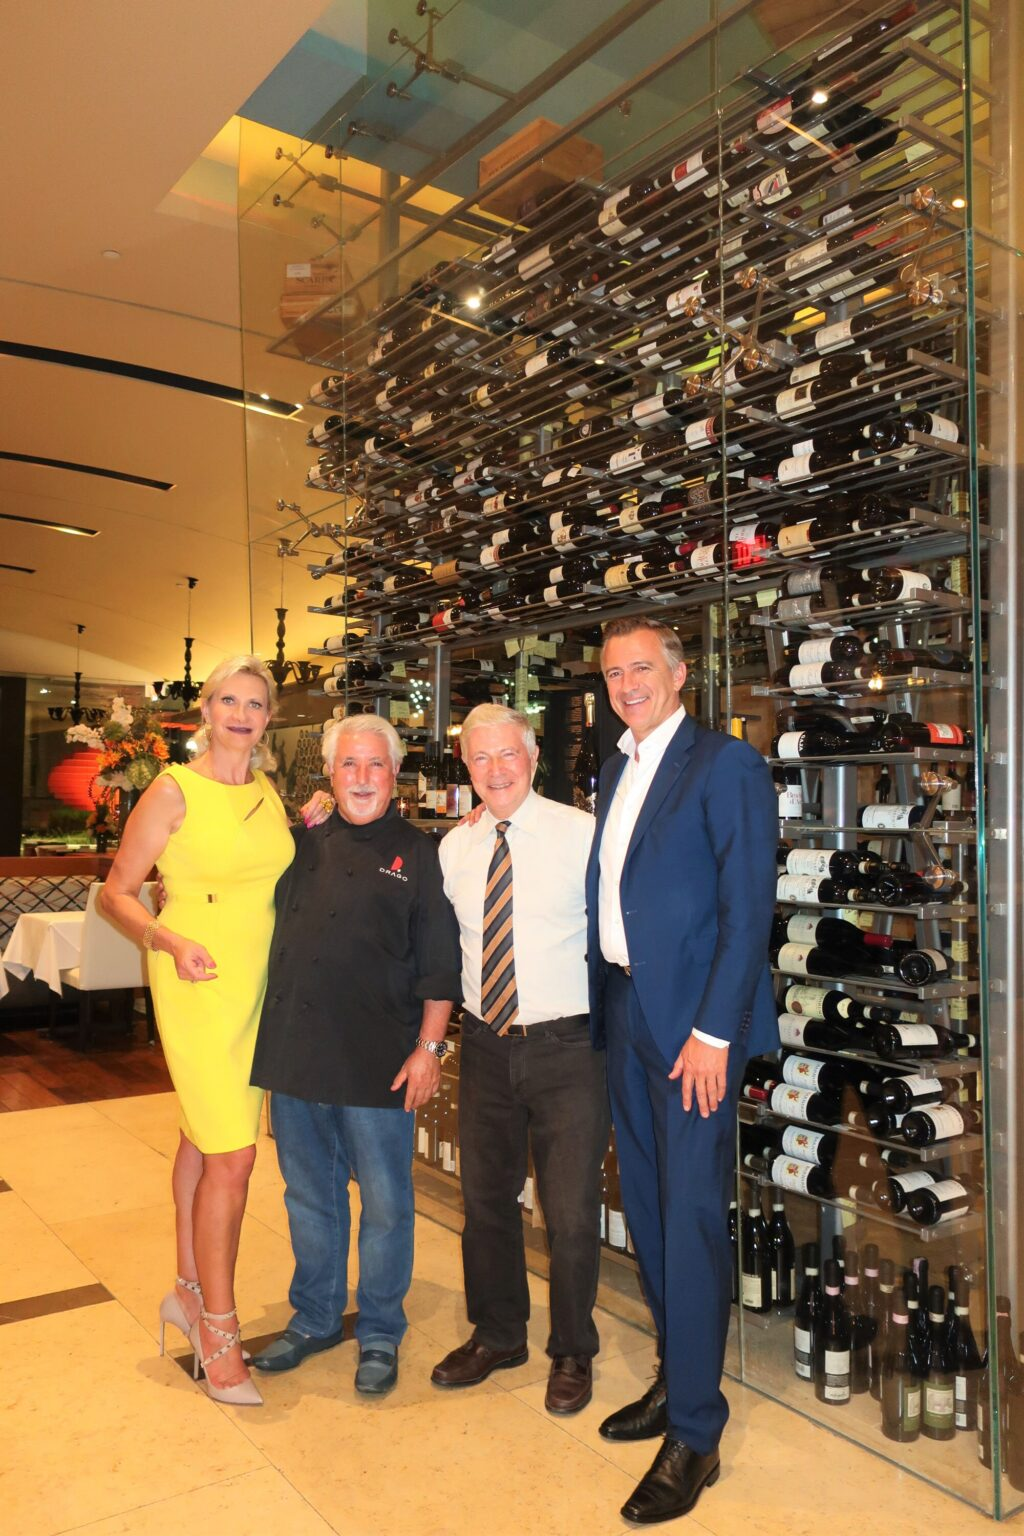 Chef Celestino Drago, Managing partner Piero Selvaggio, GAYOT's Wine & Spirits Editor Dirk Smits, Sophie Gayot